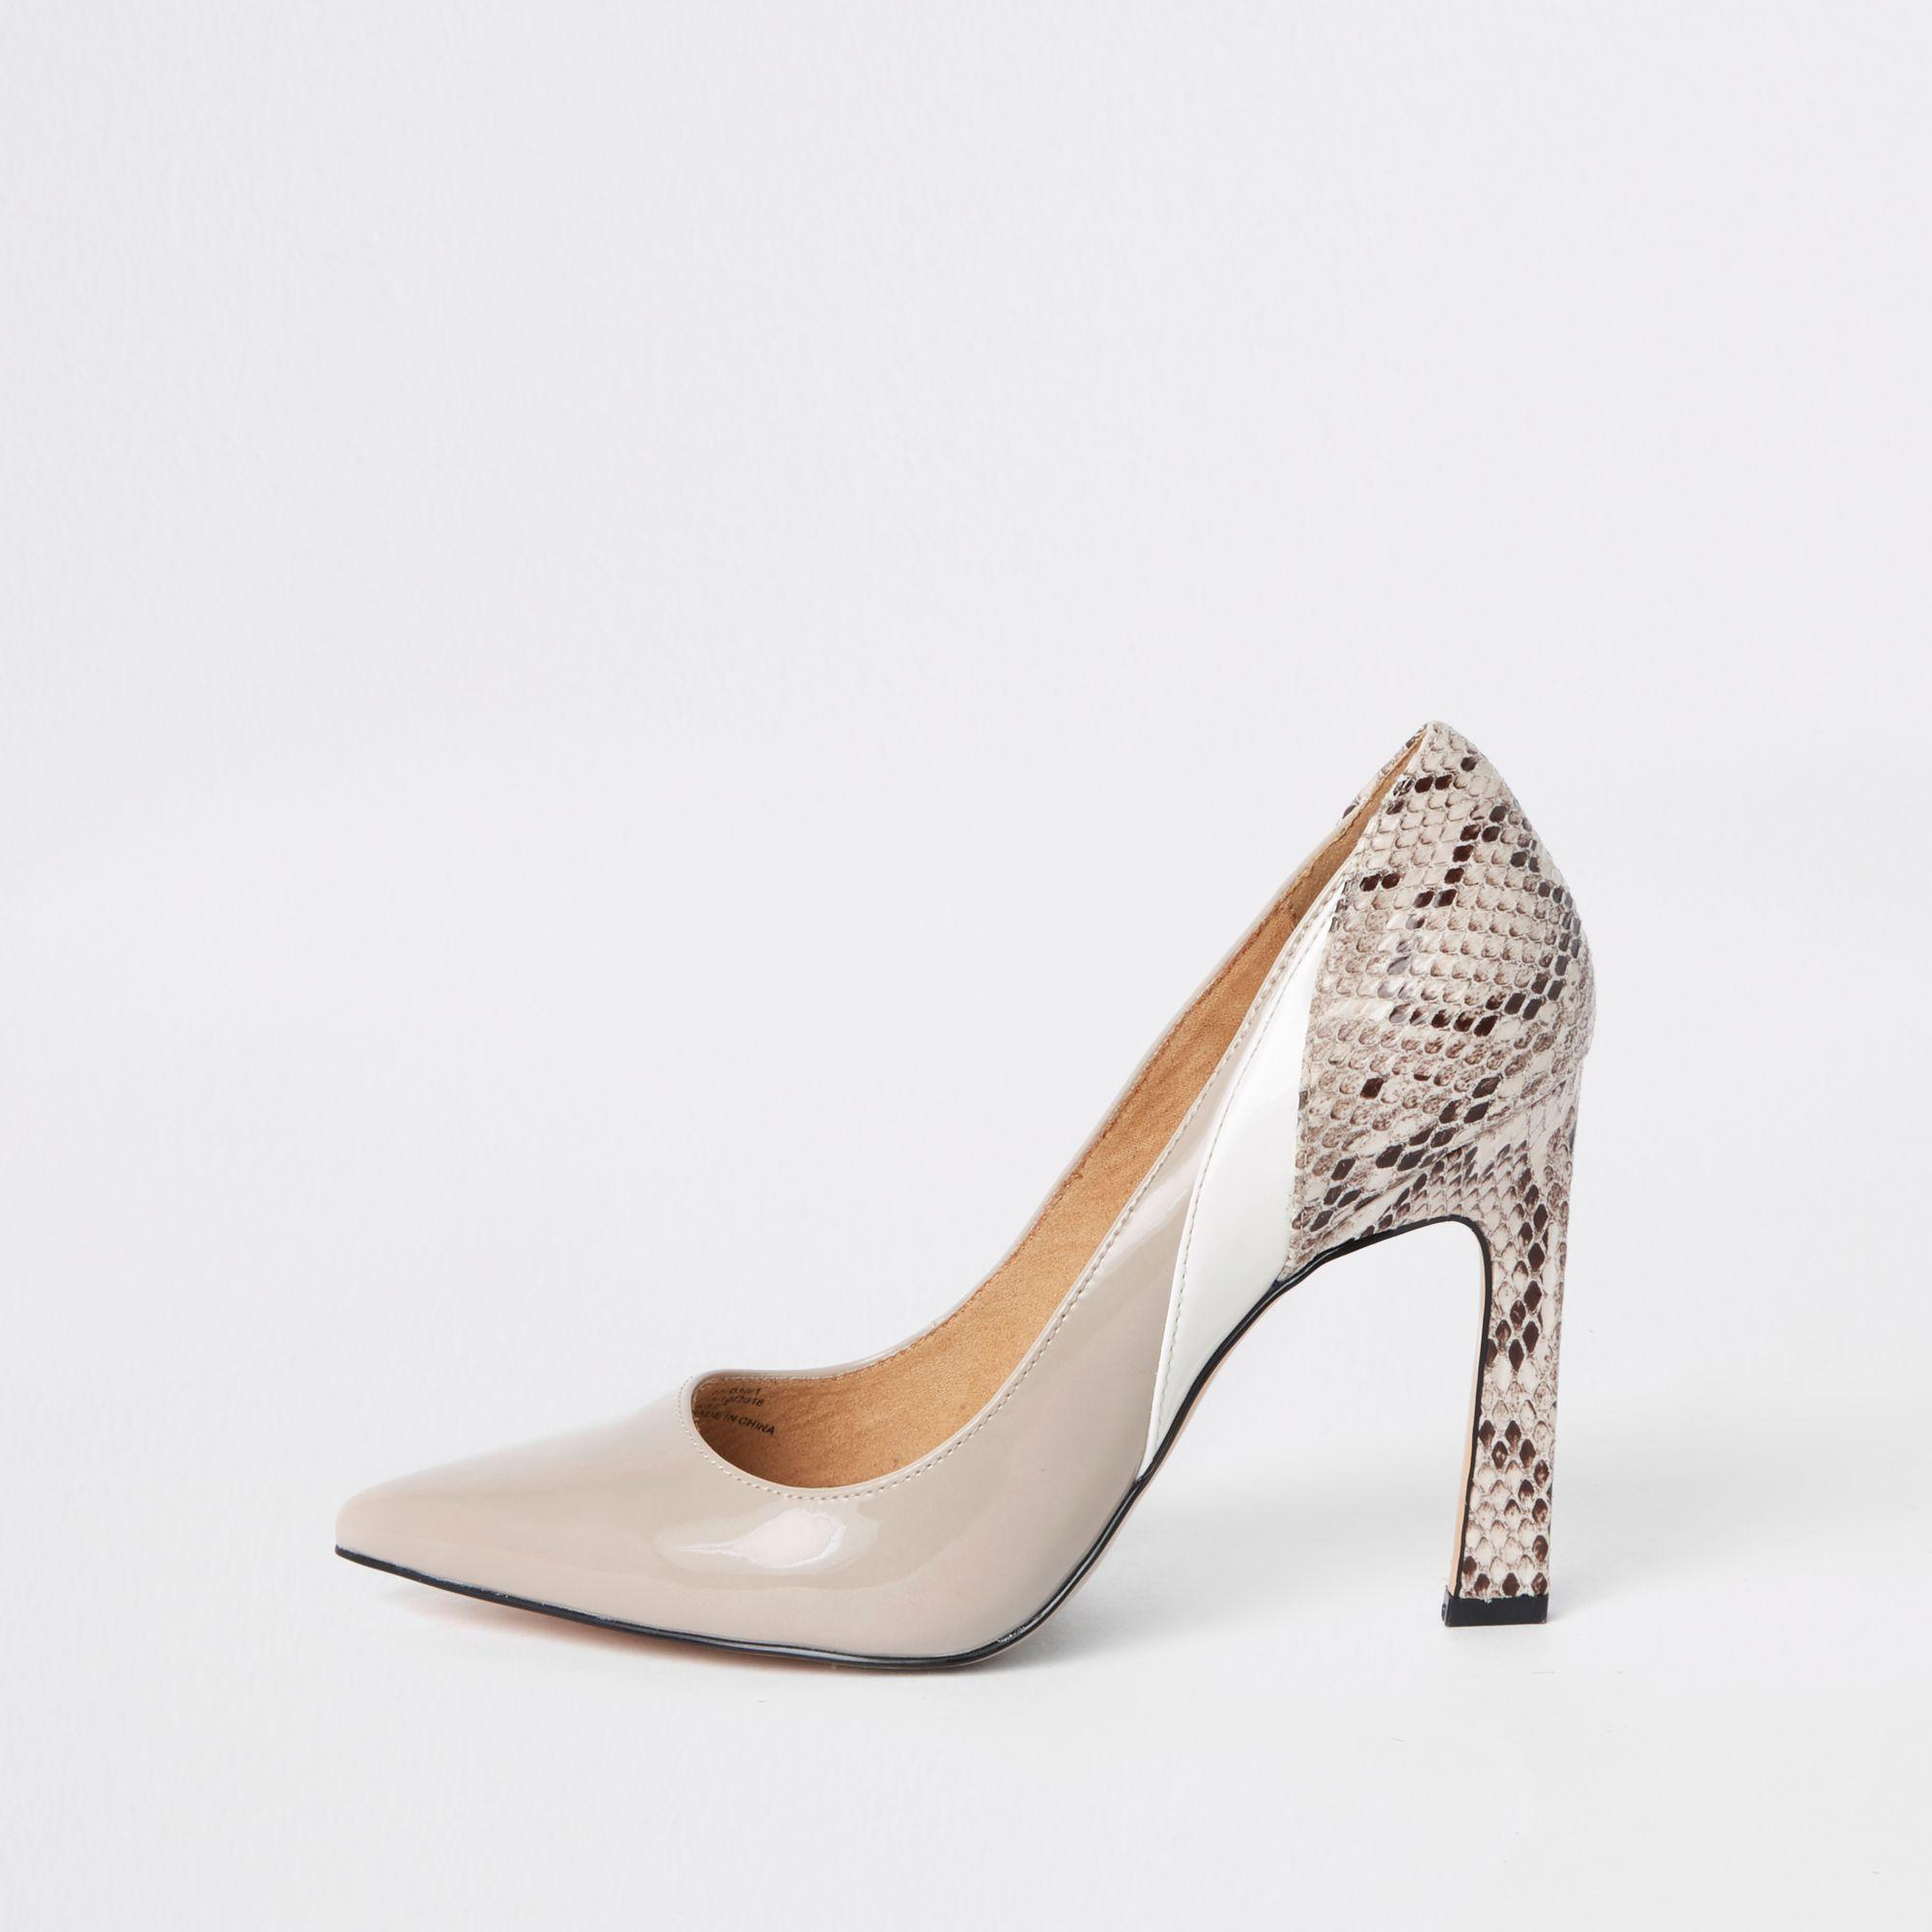 edee12fc0f7 Lyst - River Island Beige Snake Print Panel Court Shoes in Natural